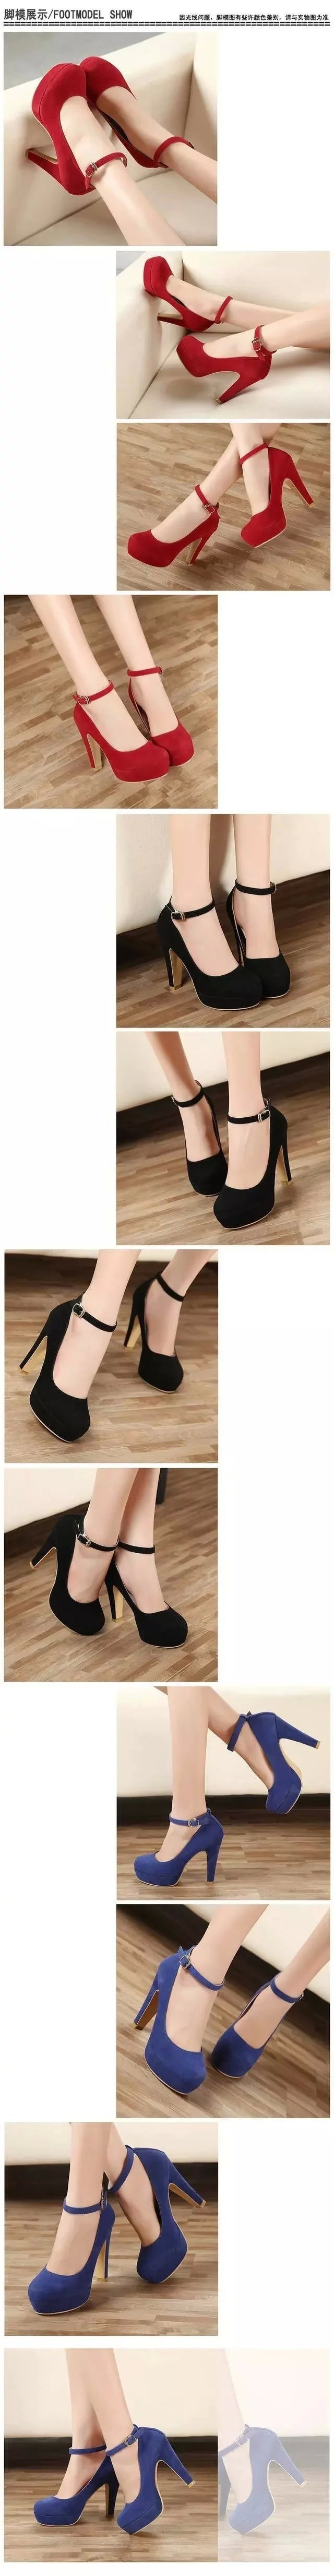 2018 woman Pumps autumn thick heel shoes ol high-heeled shoes female the trend of ultra high heels female shoes 8 Online shopping Bangladesh